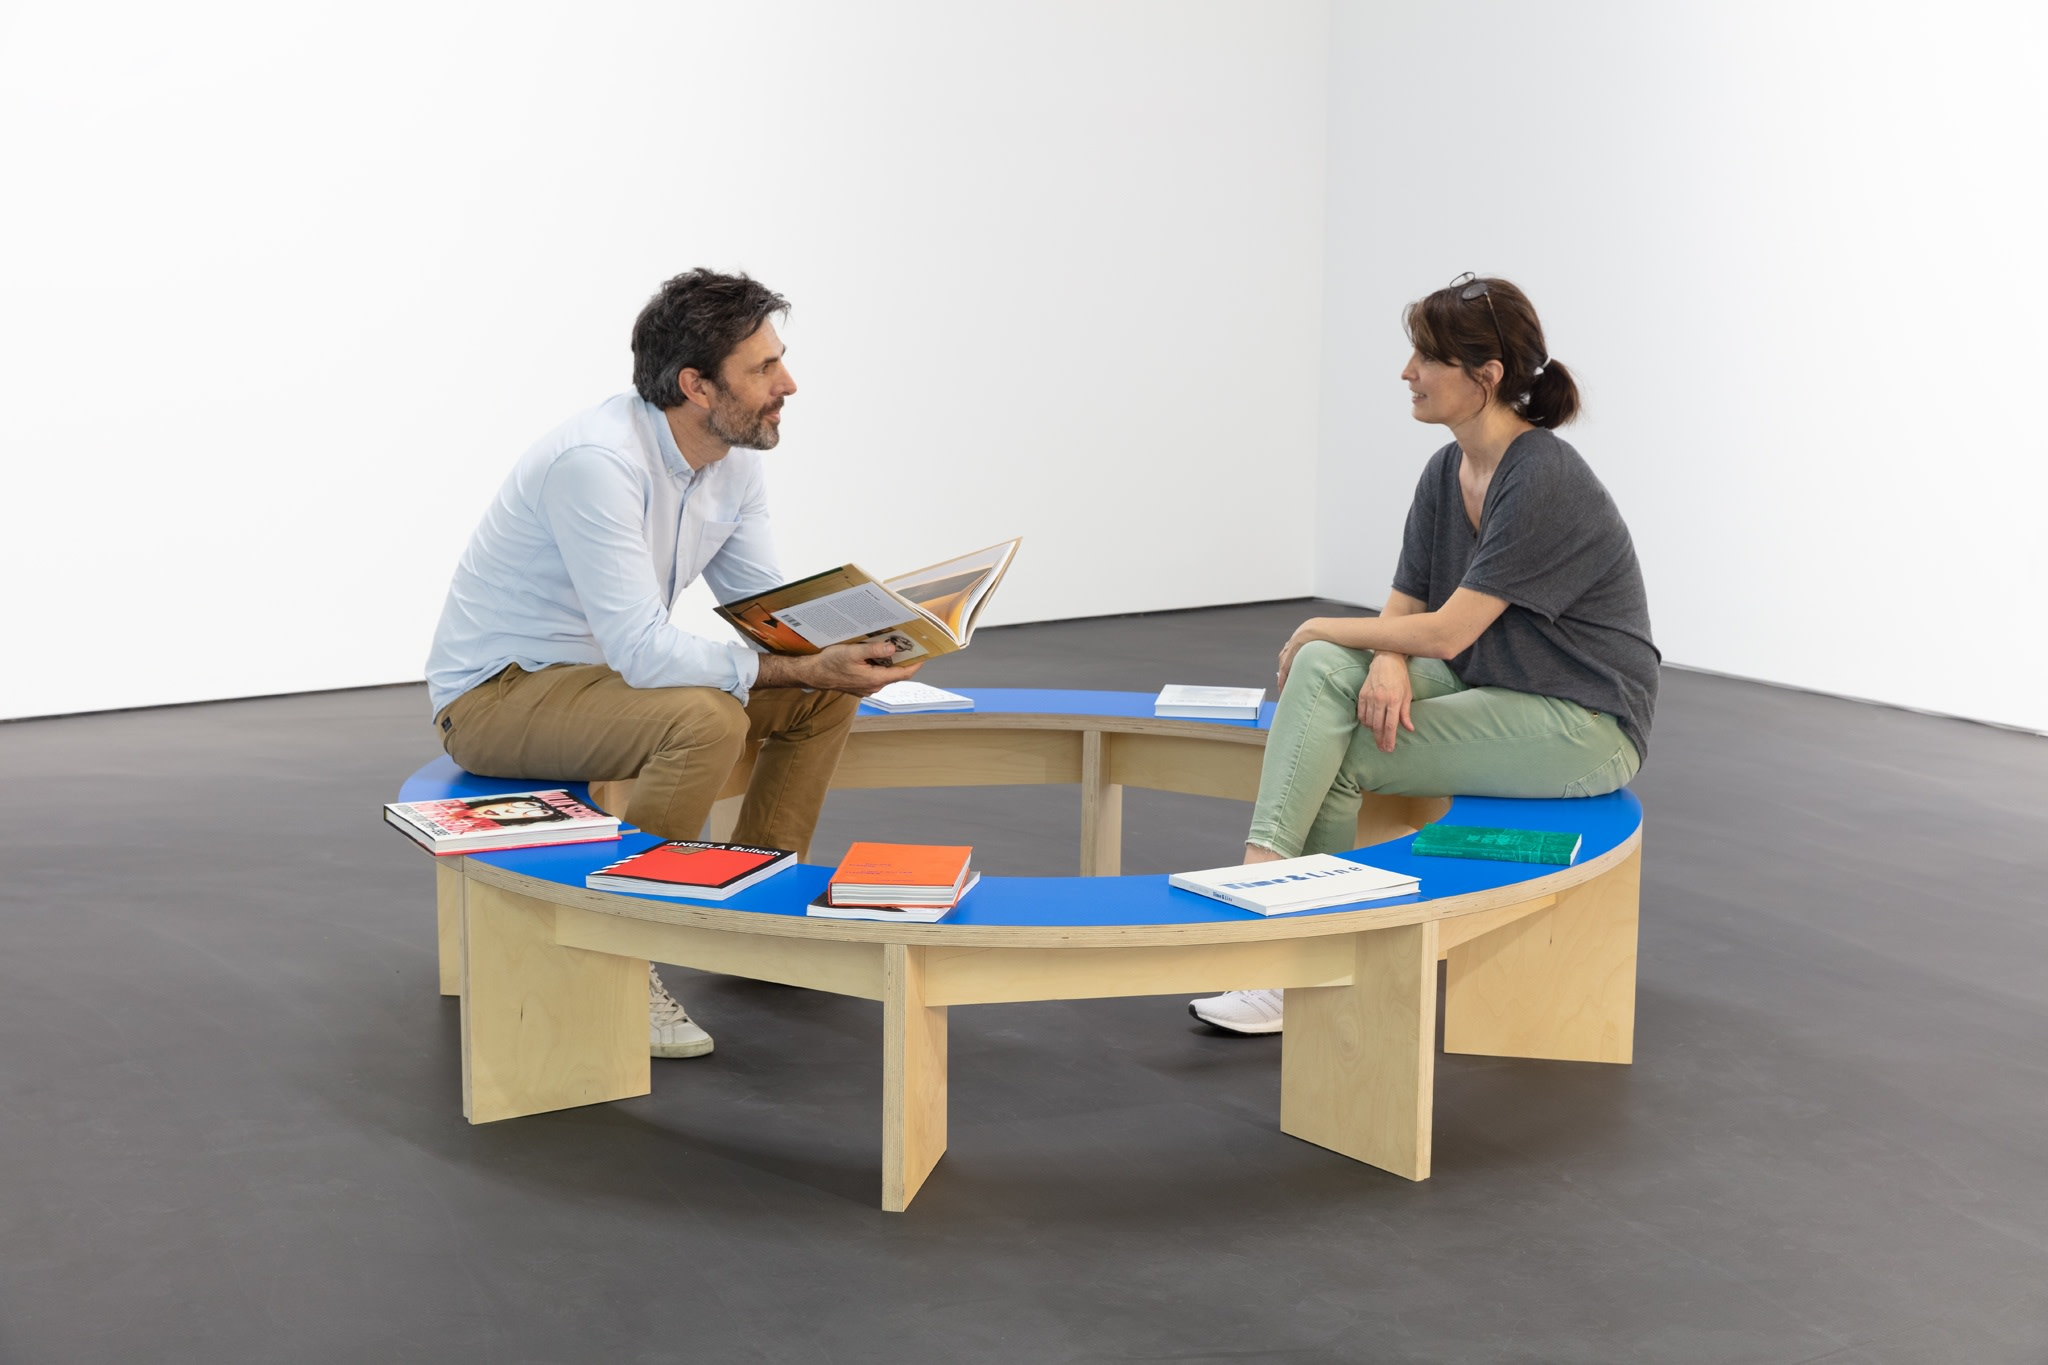 Liam Gillick, Prototype Seating For A Revised Production Centre, 2005, Sperrholz, Farbe, 50 x ø 200 cm (19 3/4 x ø 78 3/4 in). Foto © Andrea Rossetti